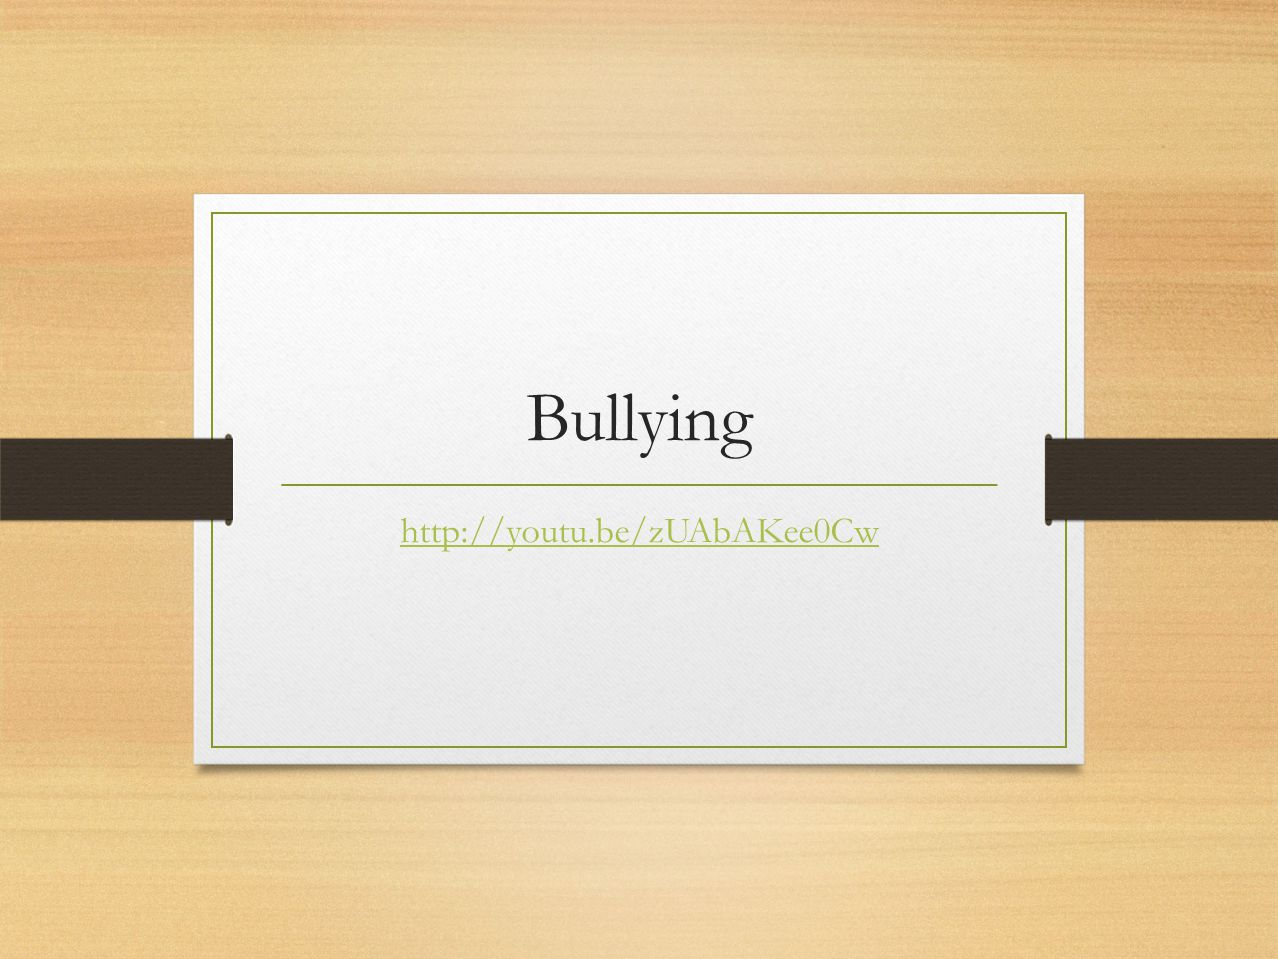 Cyberbullying Cyberbullying can happen whenever and wherever children have access to technology and are not monitored.